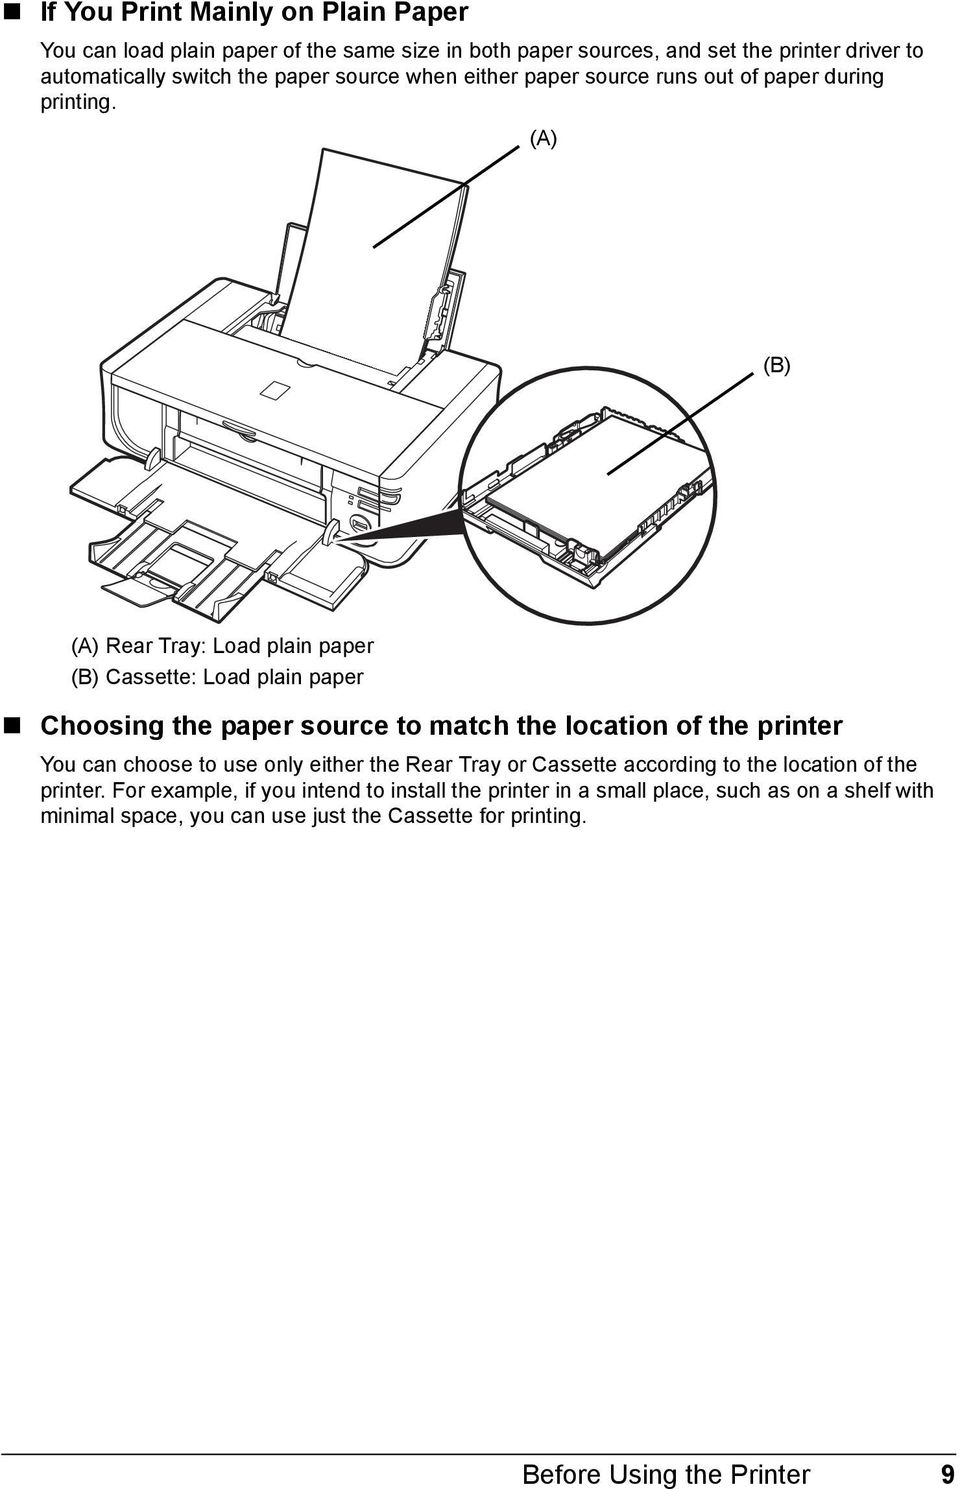 (A) (B) (A) Rear Tray: Load plain paper (B) Cassette: Load plain paper Choosing the paper source to match the location of the printer You can choose to use only